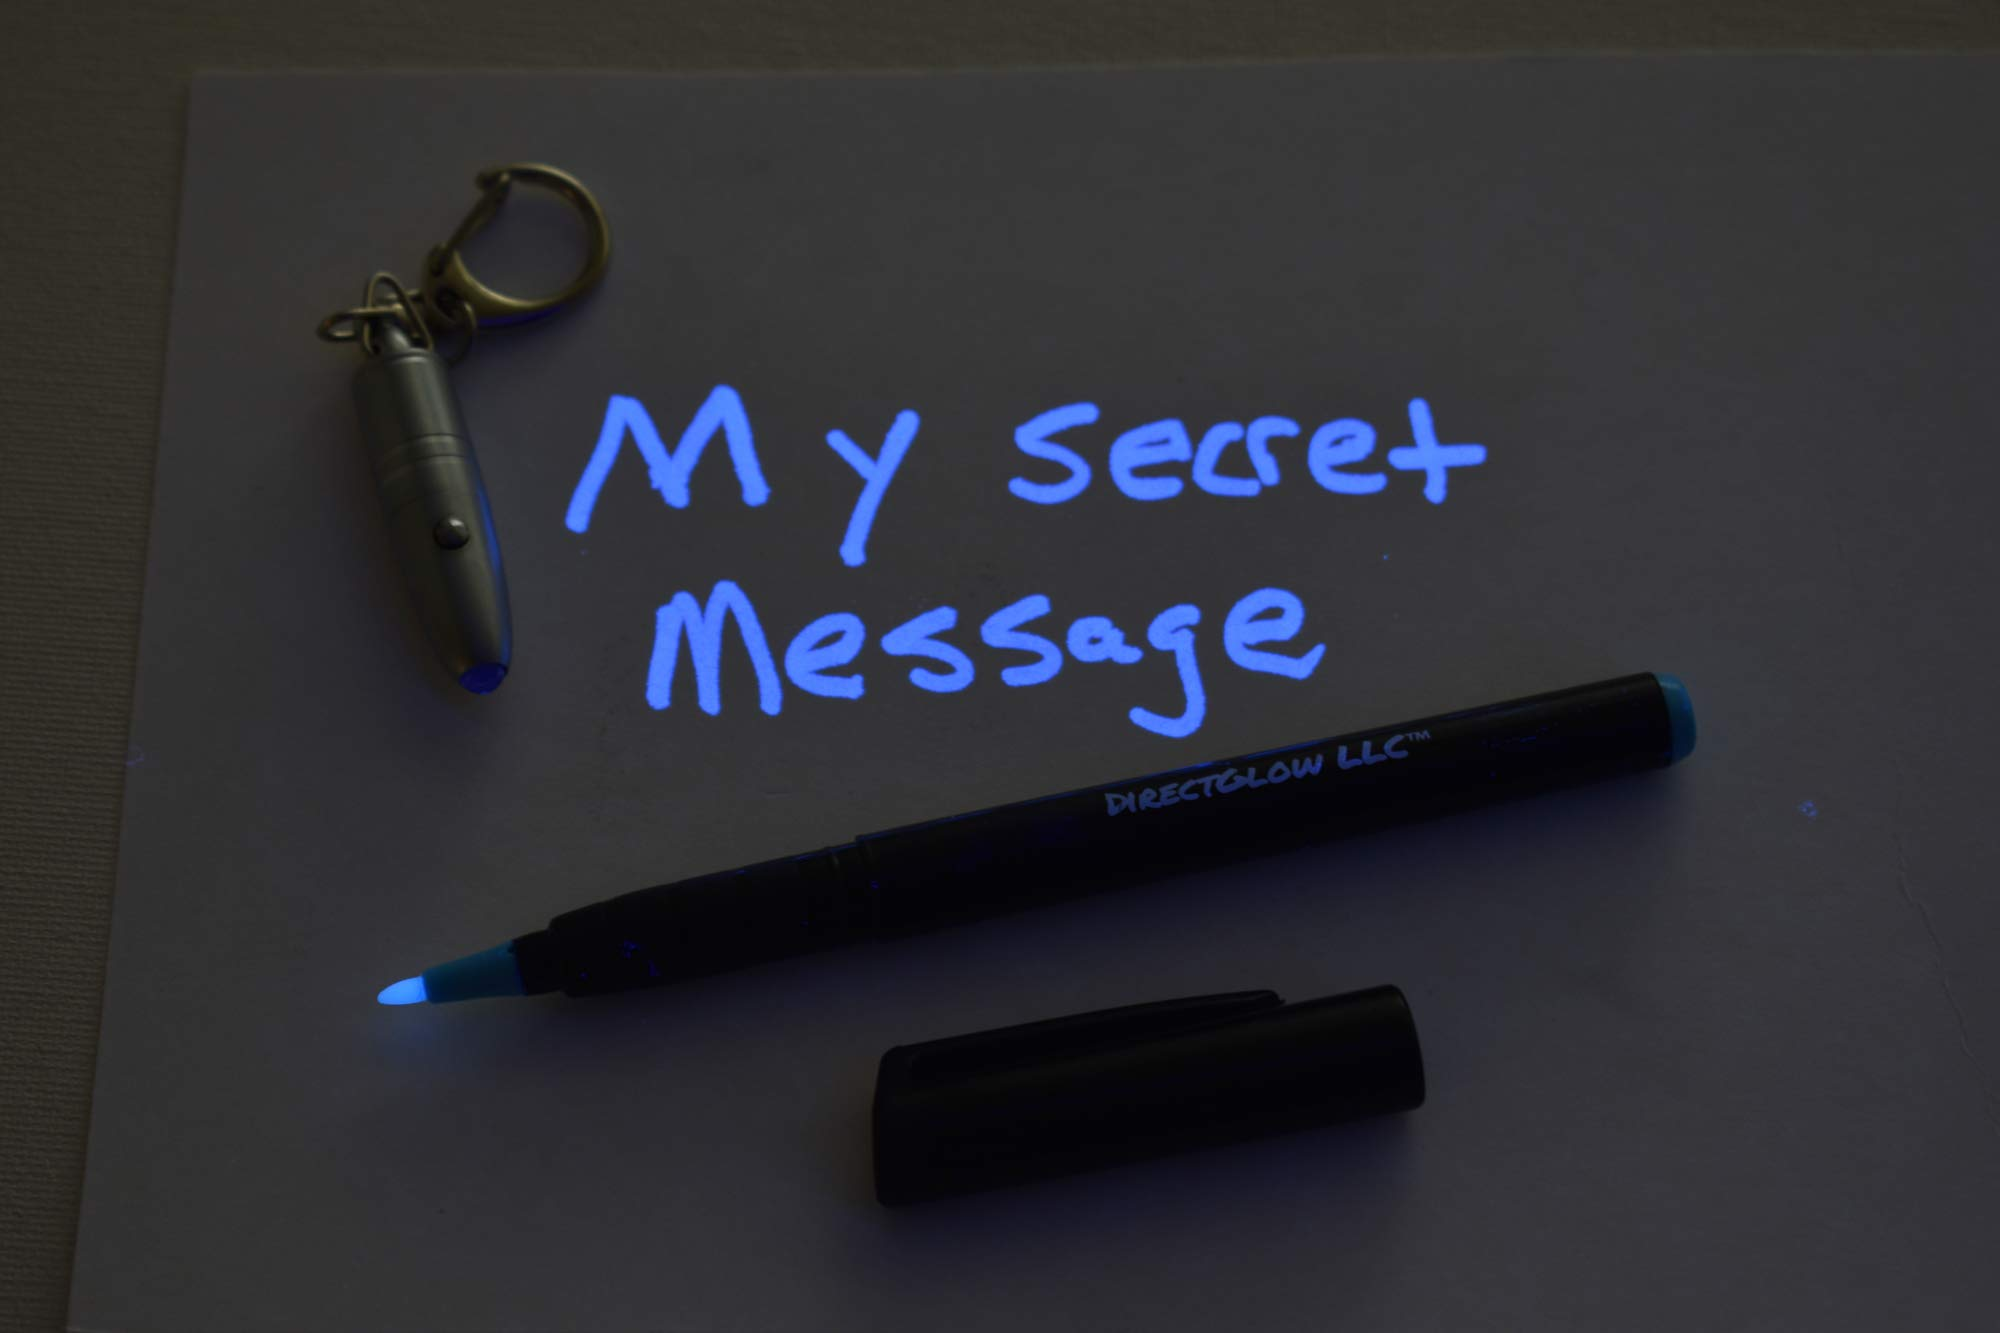 DirectGlow Invisible UV Ink Marker Pen with Metal Bullet LED Blacklight